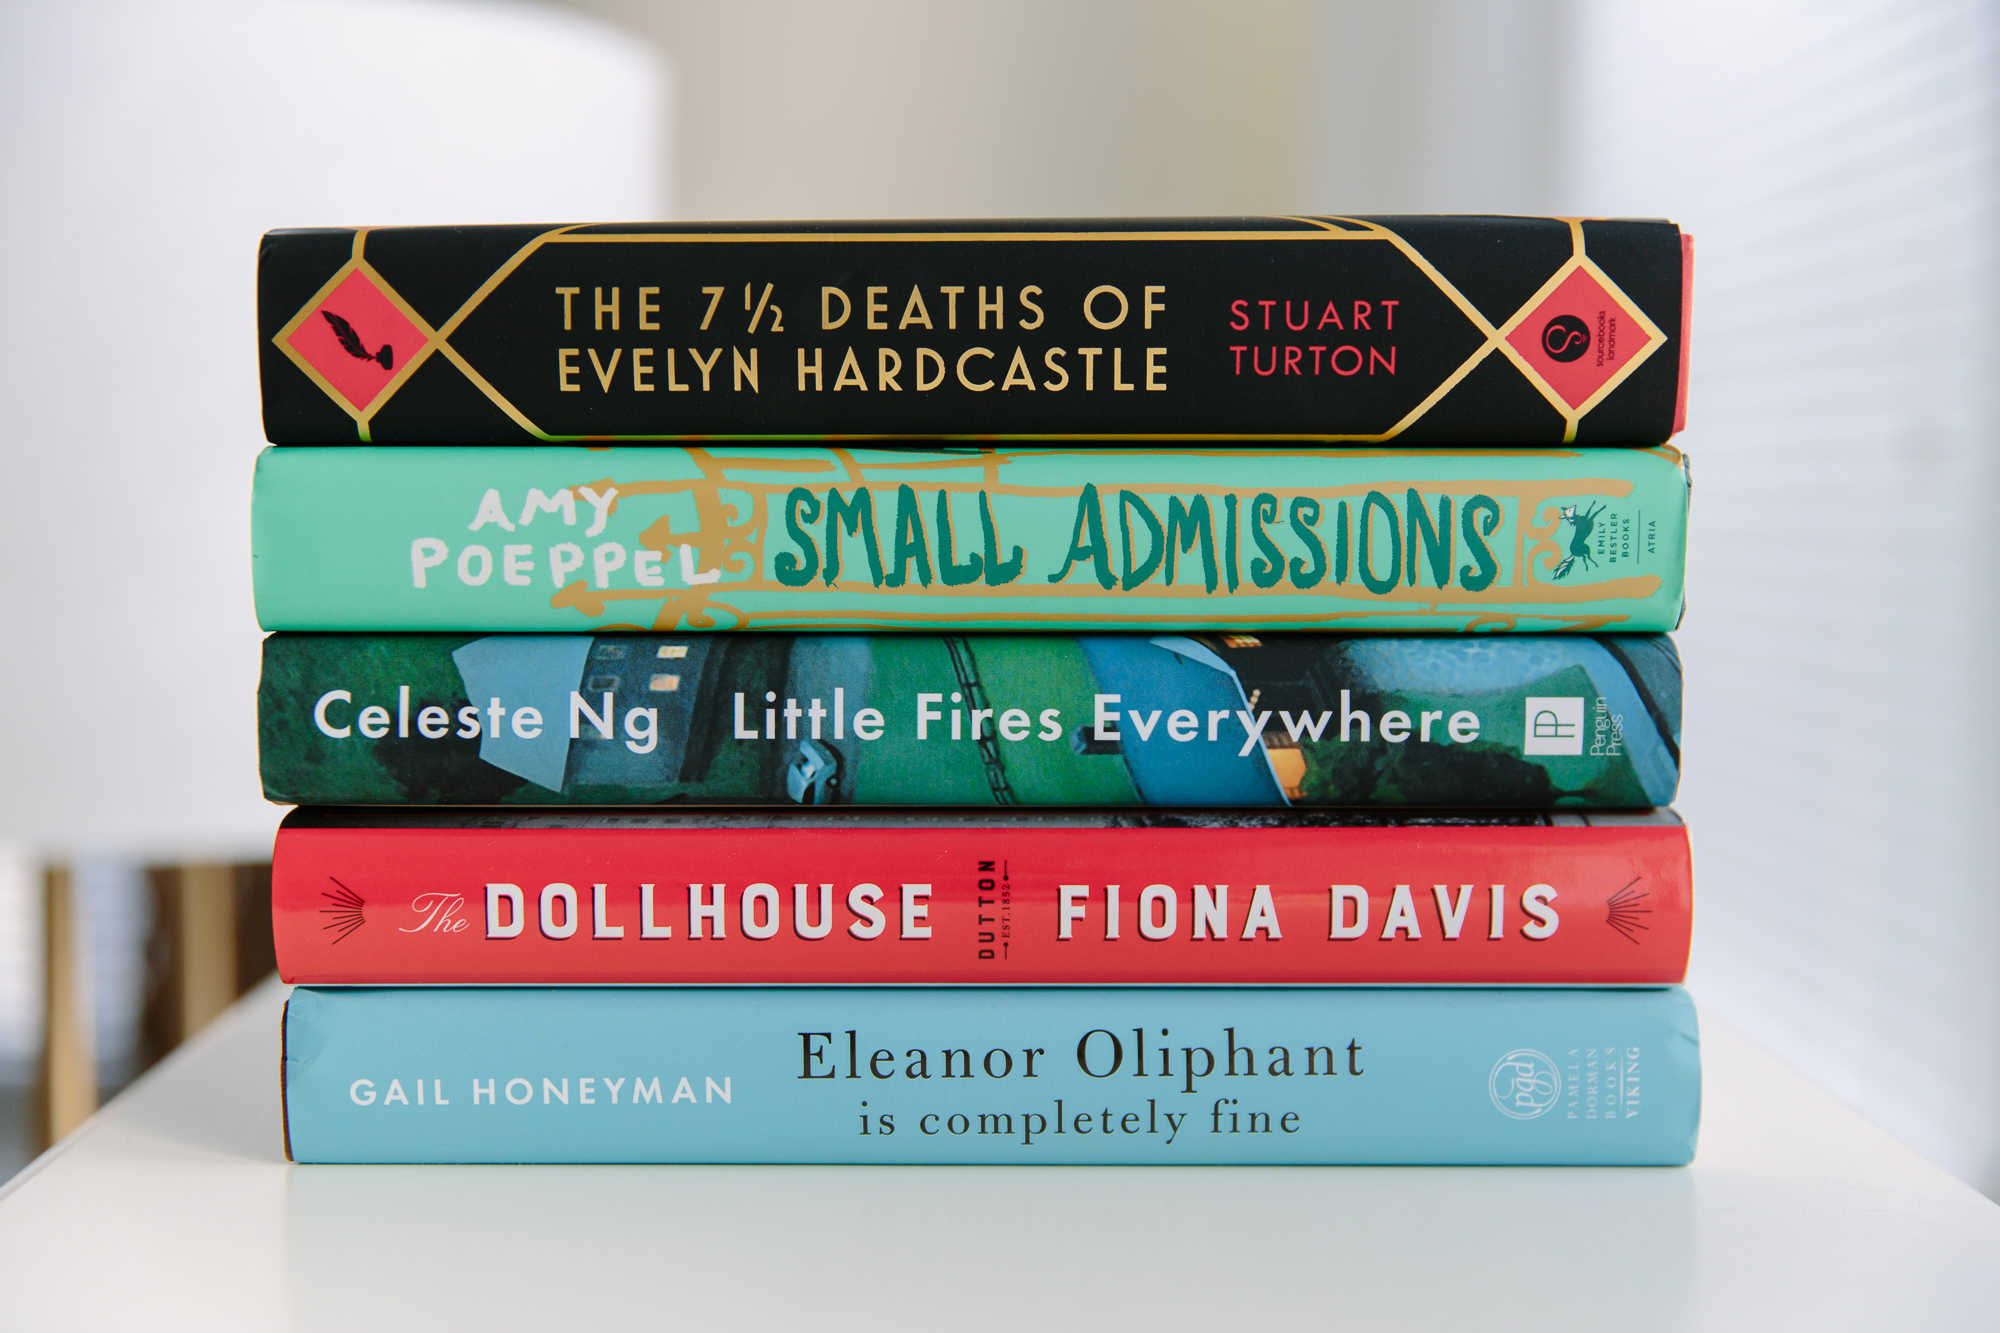 stack of books the 7 1/2 deaths of evelyn hardcastle, the dollhouse, little fires everywhere